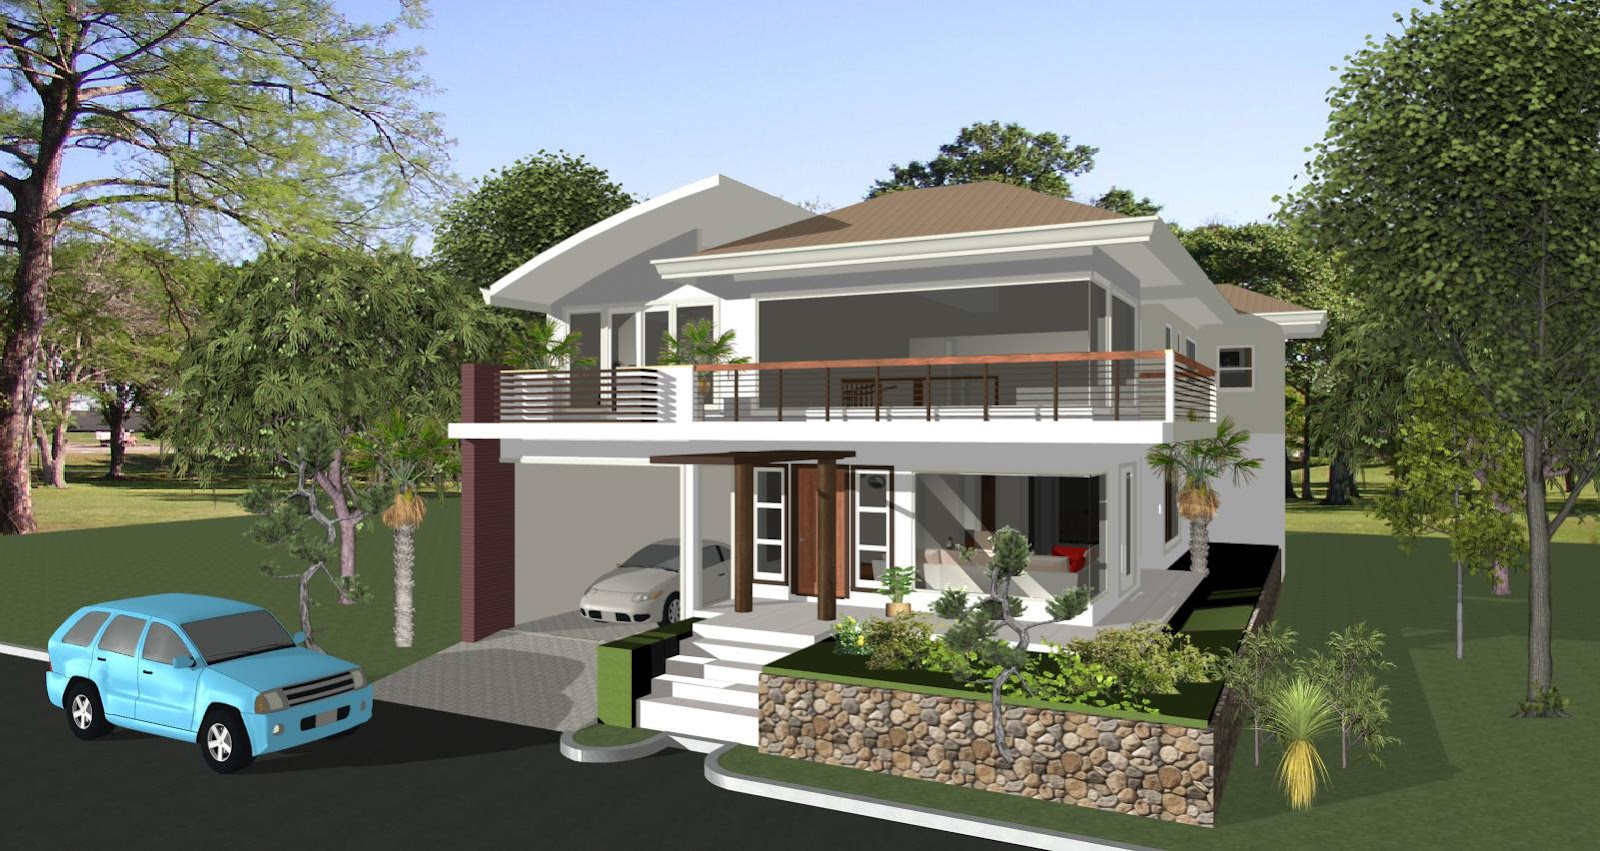 House designs philippines architect bill house plans for Architecture design house plan